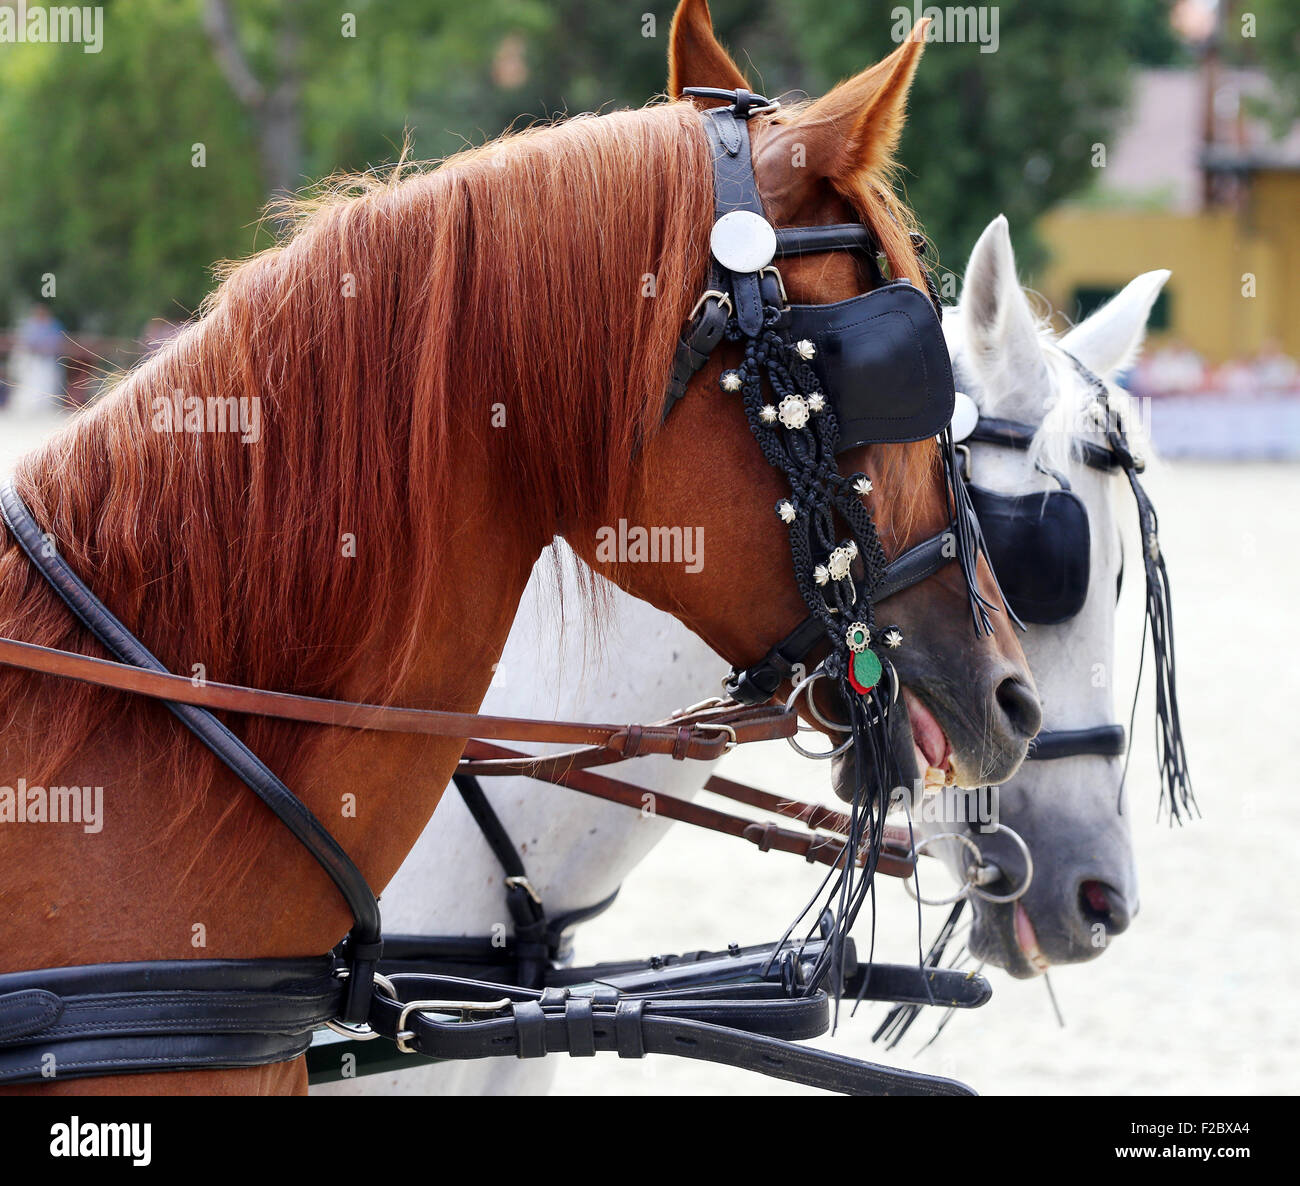 . Head shot of a harnessed horses with blinds. Heads of two thoroughbred horses in harnesses - Stock Image